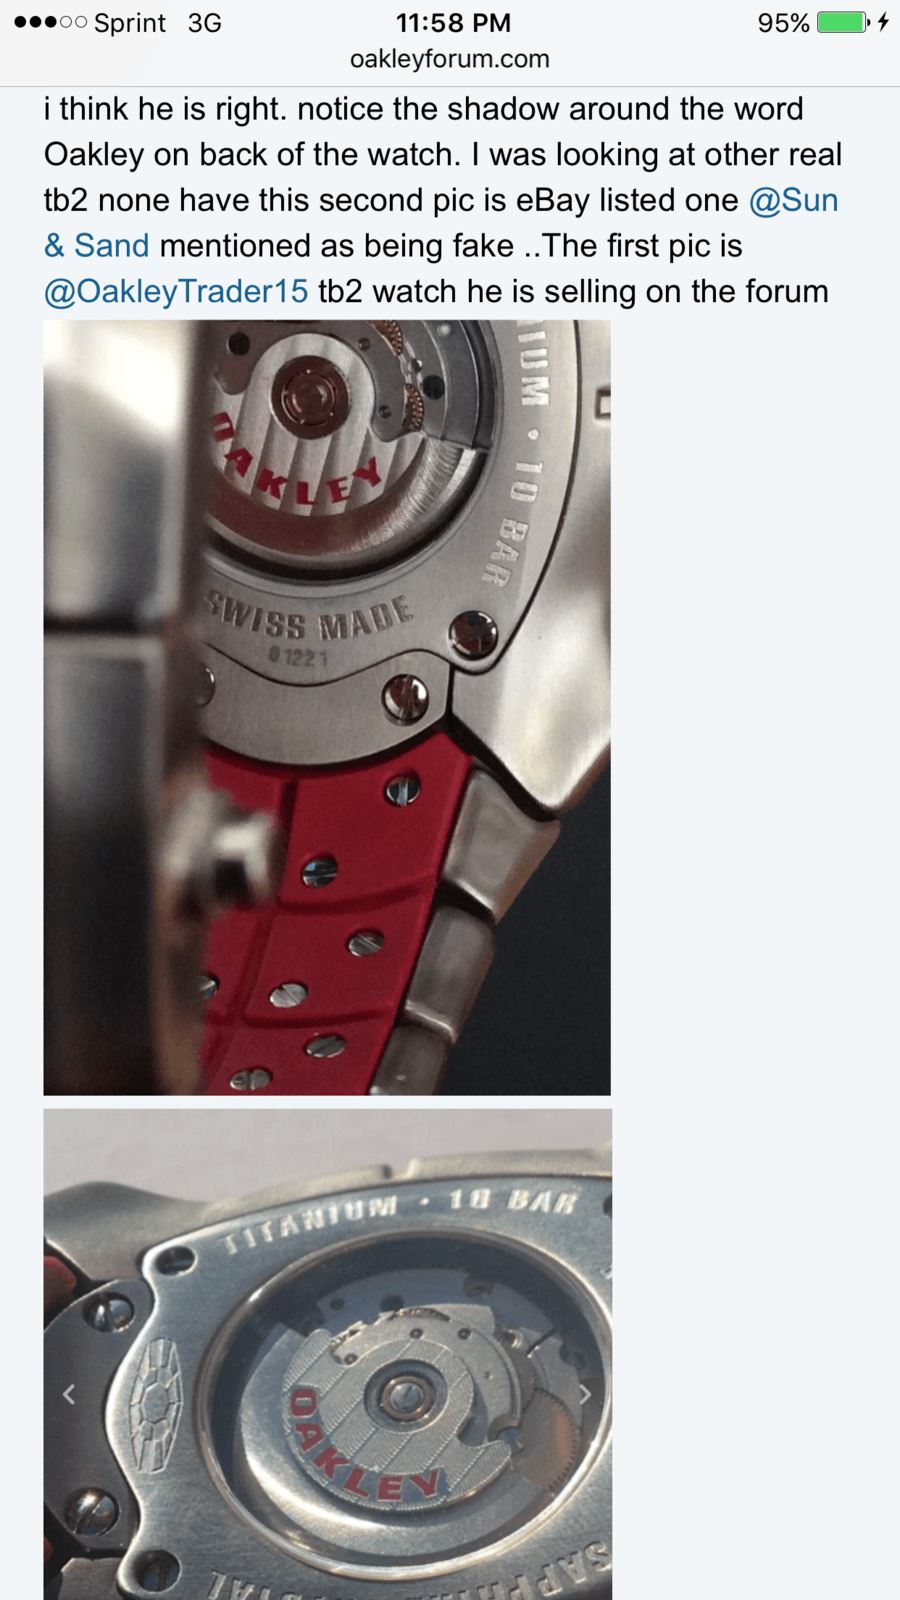 Yet Another Fake Time Bomb II on eBay - image.png